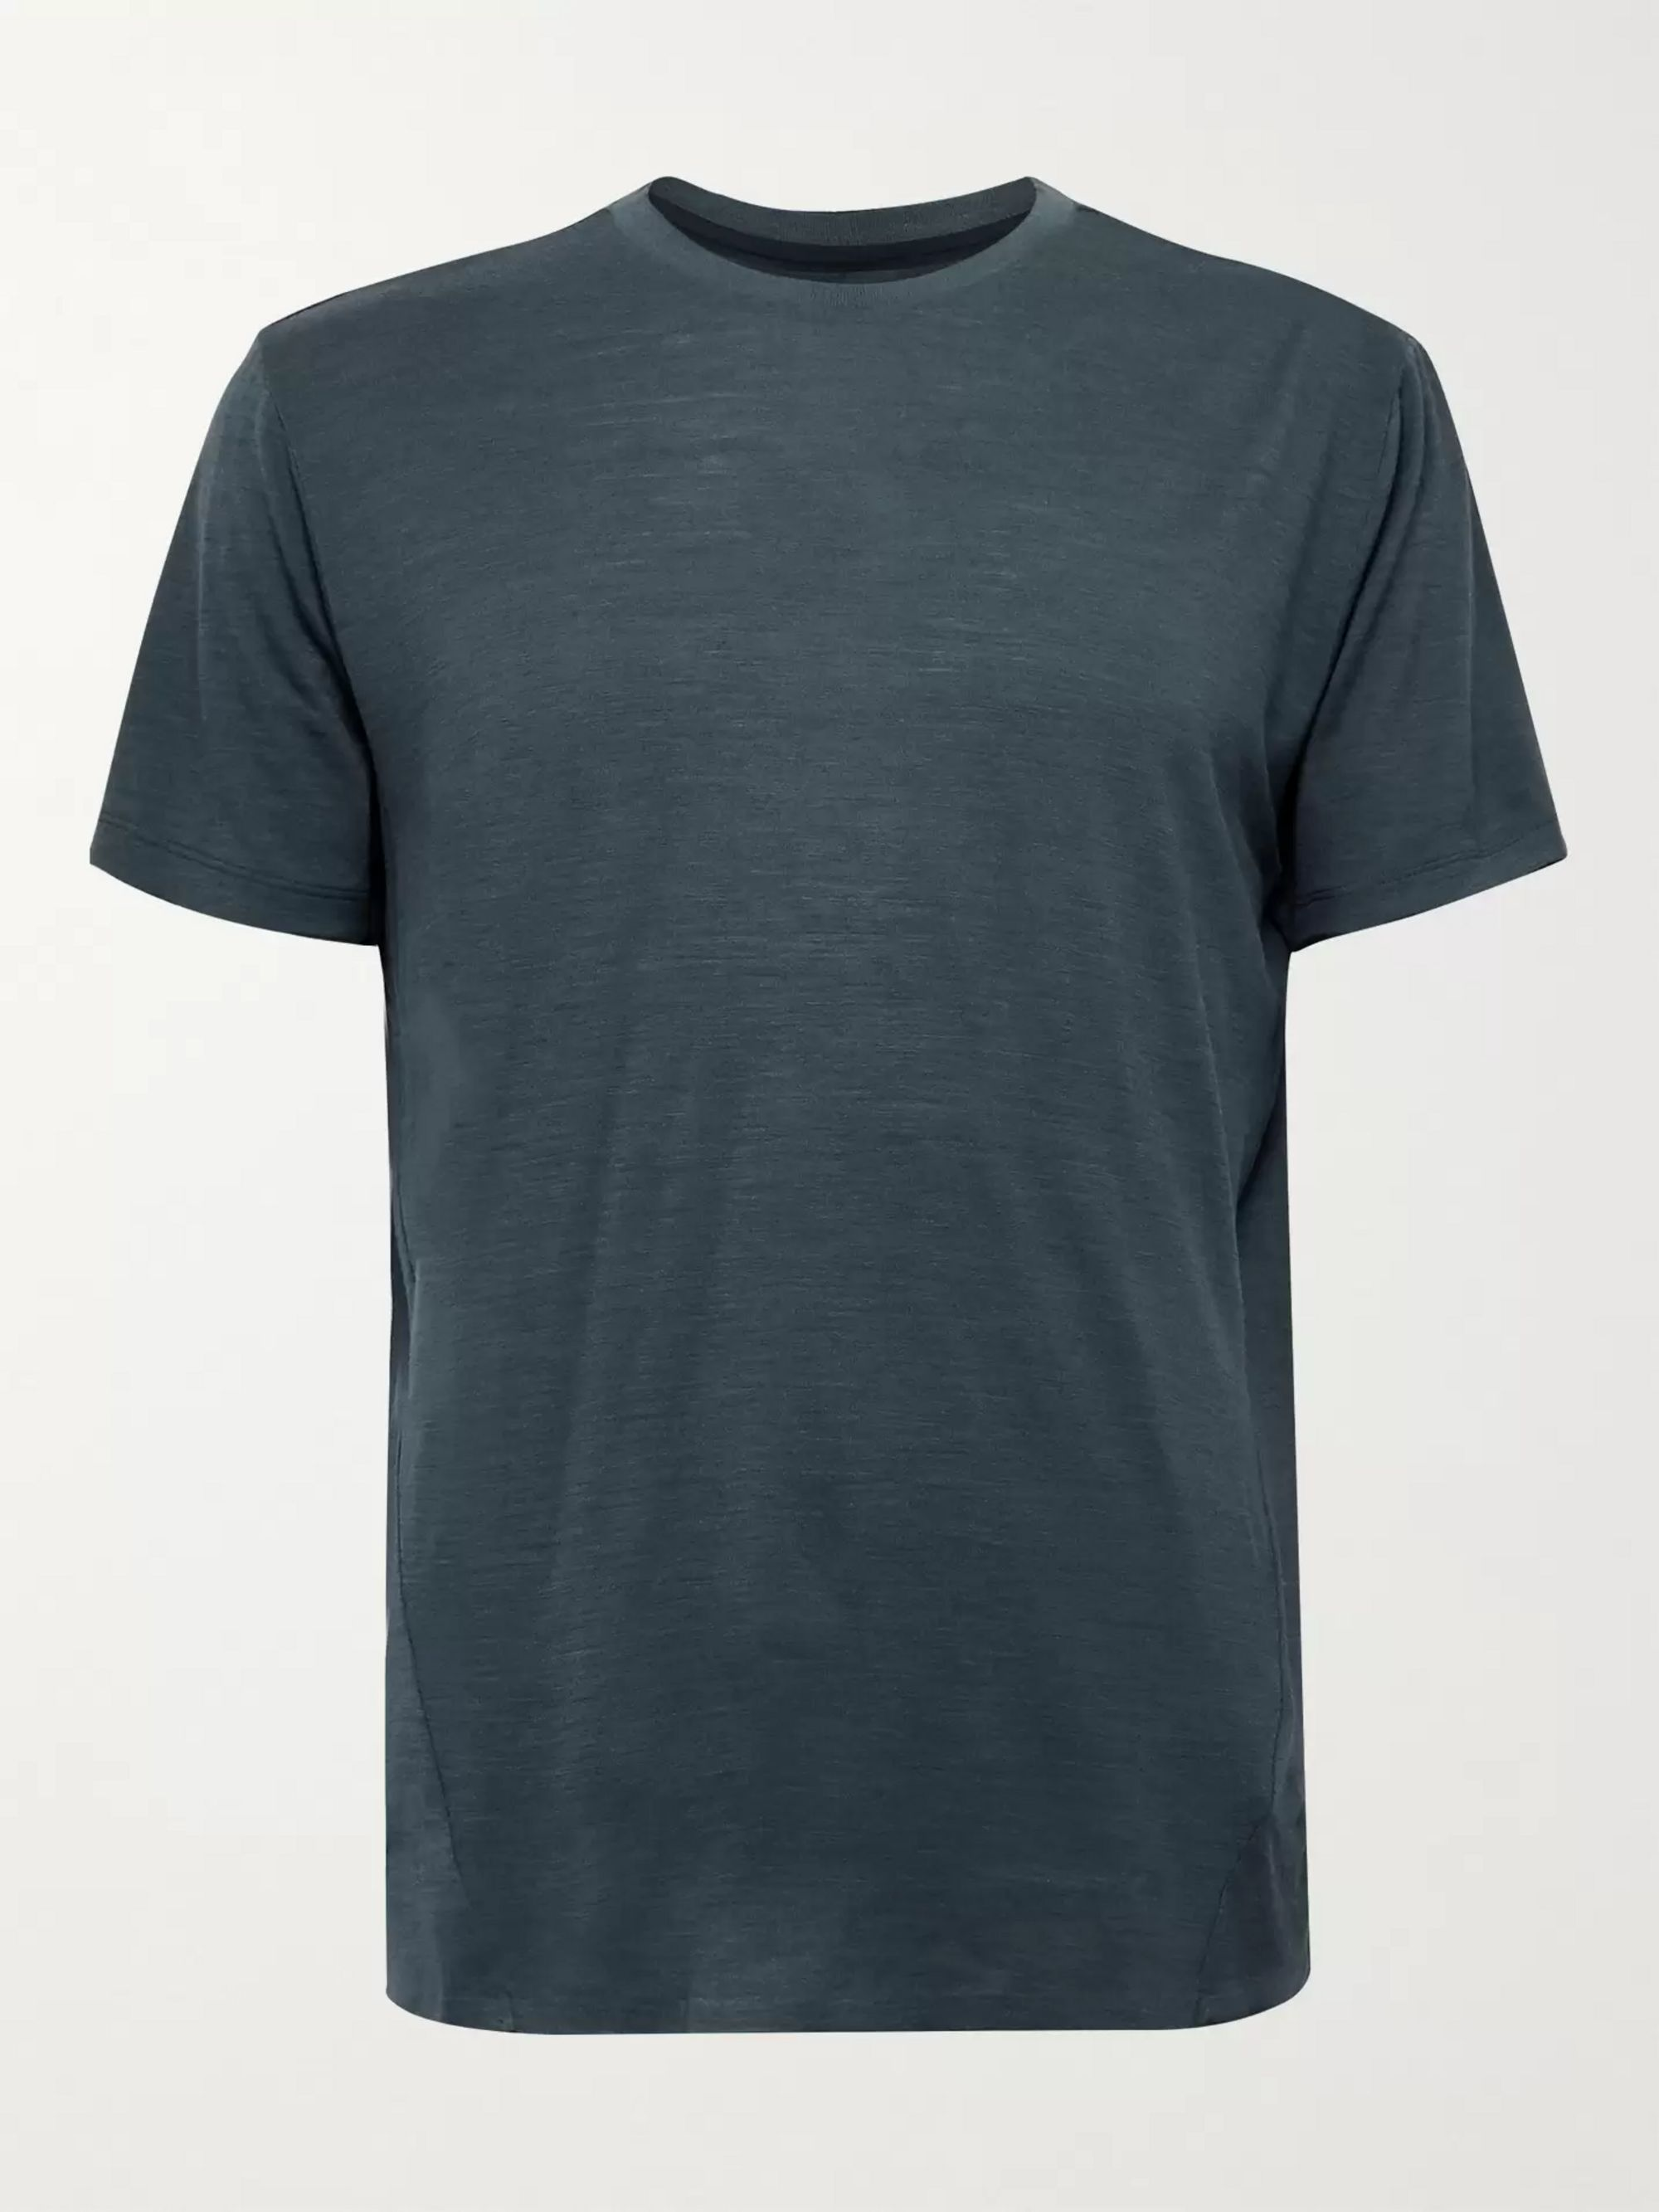 ORLEBAR BROWN Shark Capsule Sammy Merino Wool-Blend T-Shirt